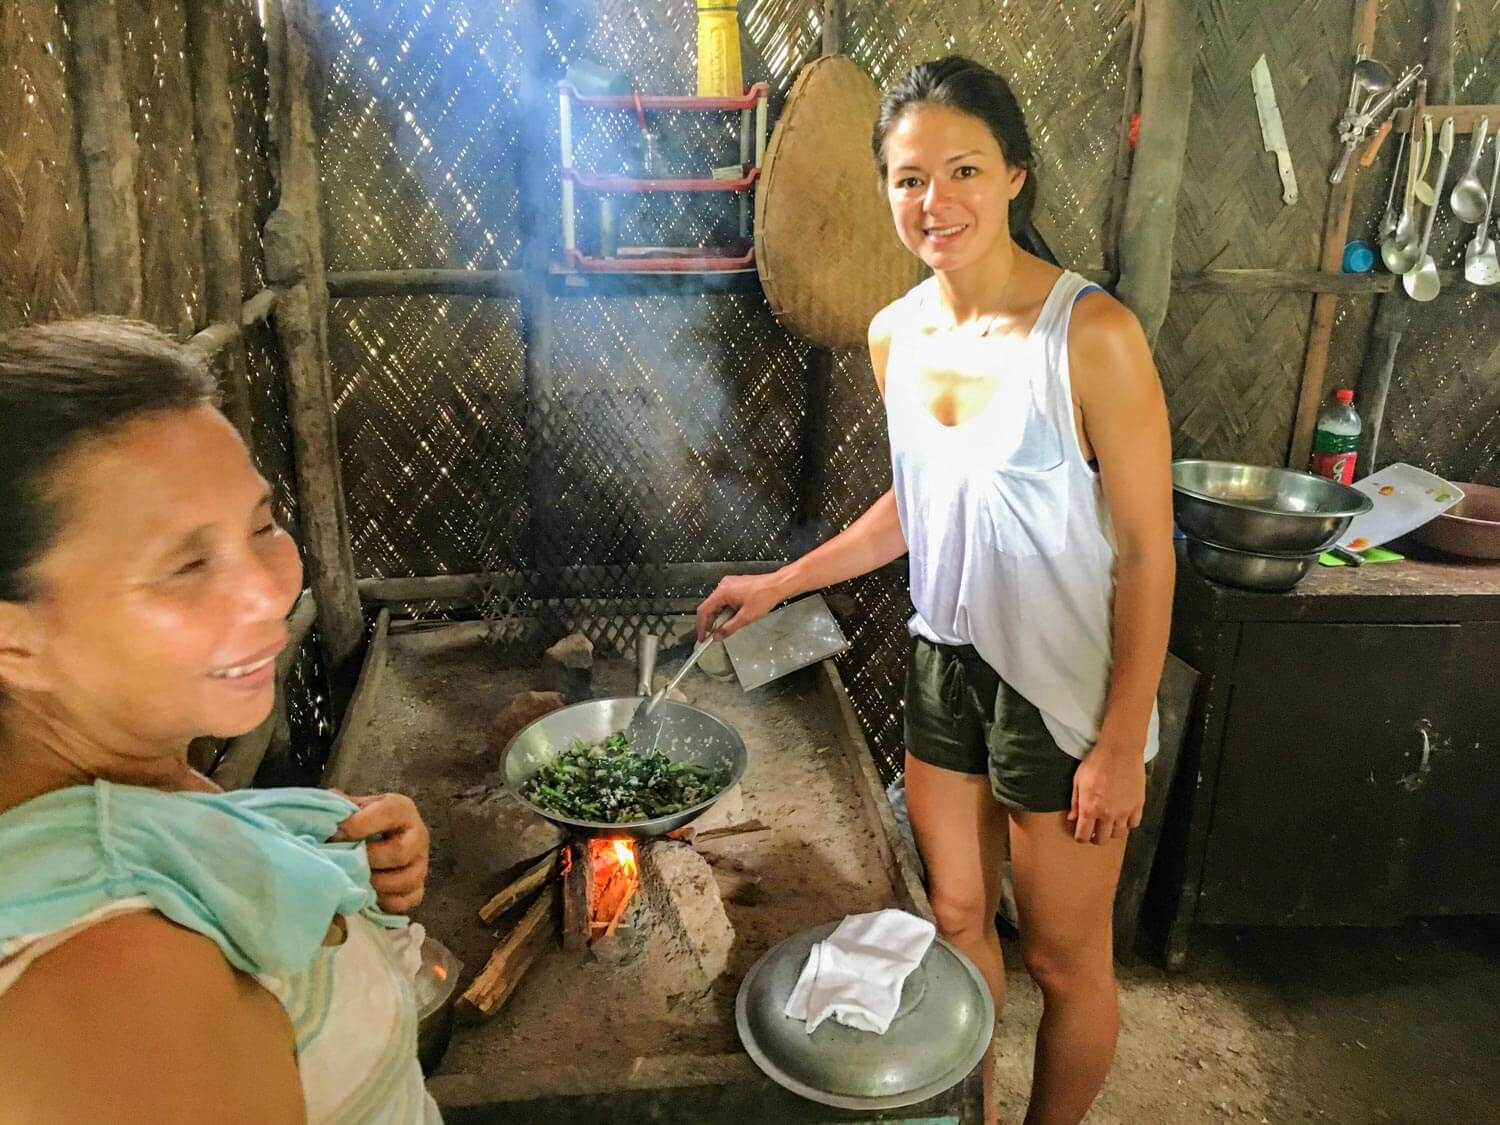 Kim cooking in a rustic hut in Palawan